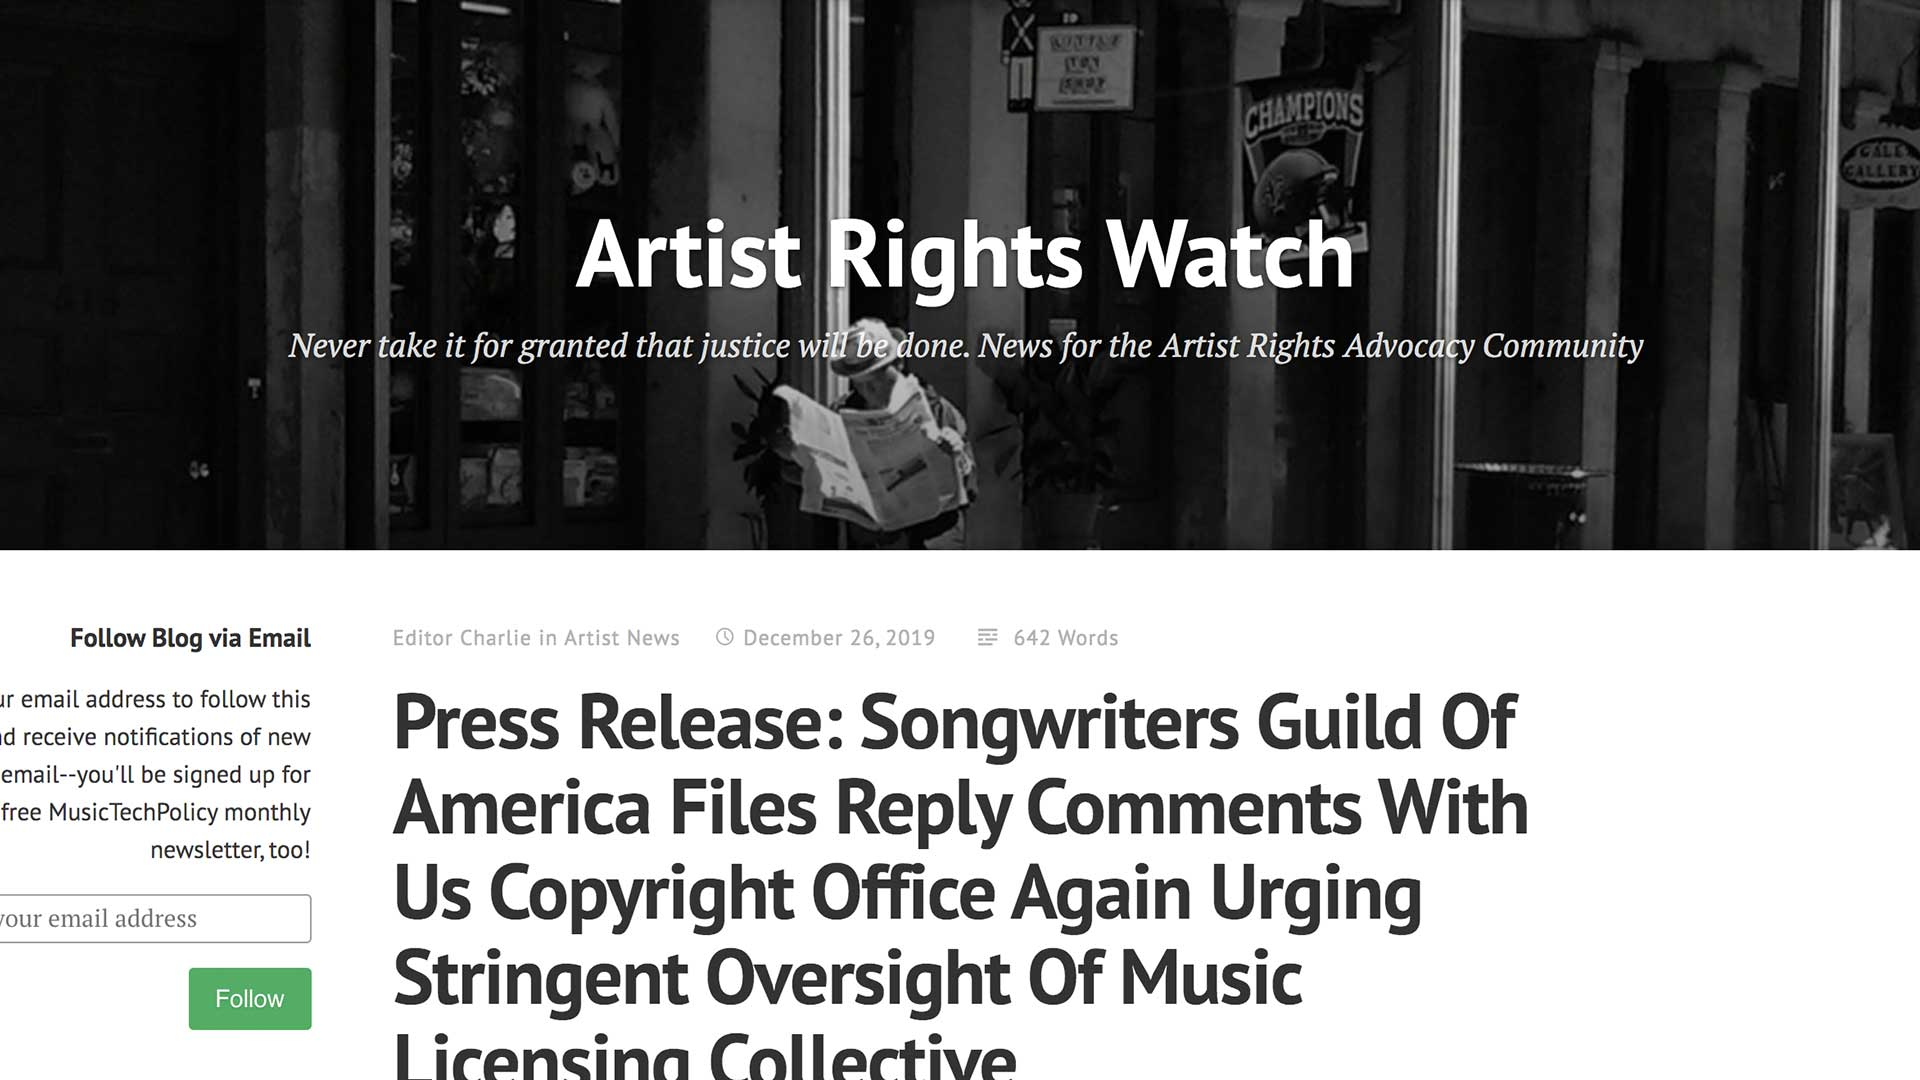 Fairness Rocks News Press Release: Songwriters Guild Of America Files Reply Comments With Us Copyright Office Again Urging Stringent Oversight Of Music Licensing Collective